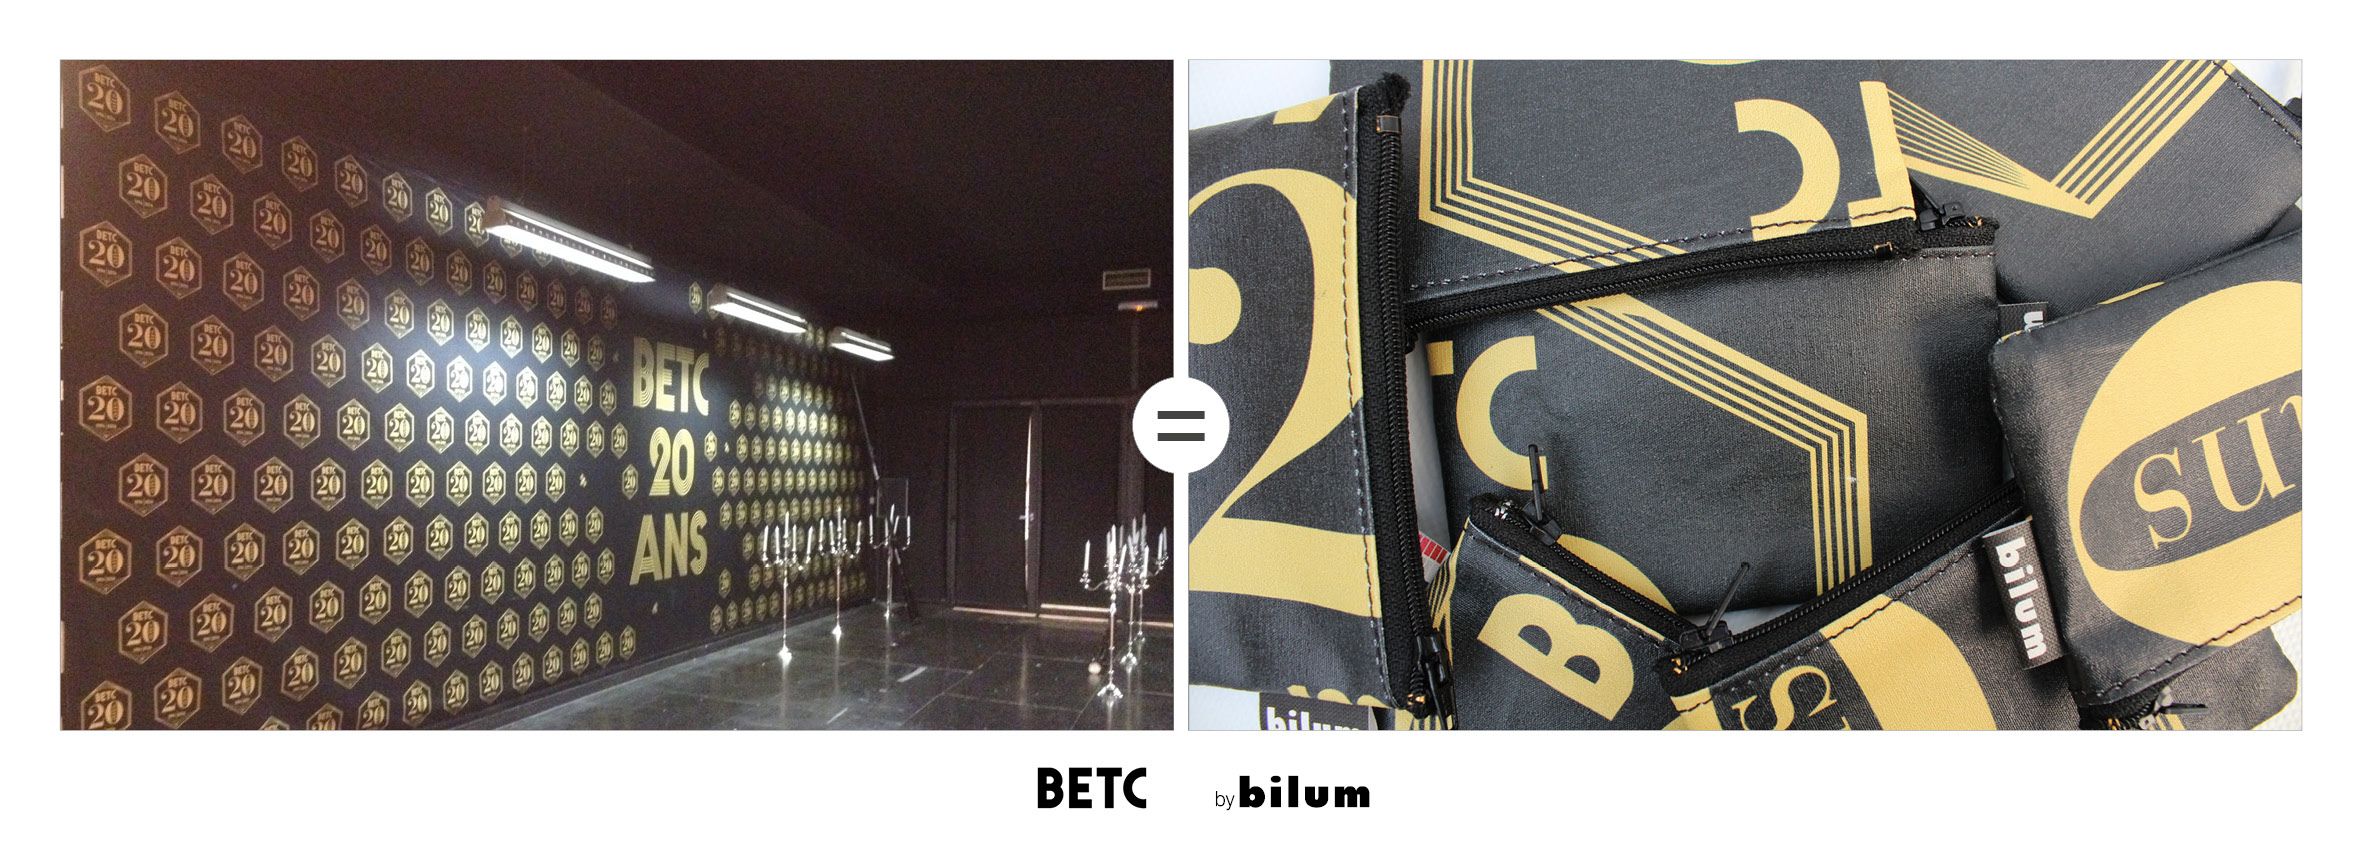 BETC toile upcyclees by bilum